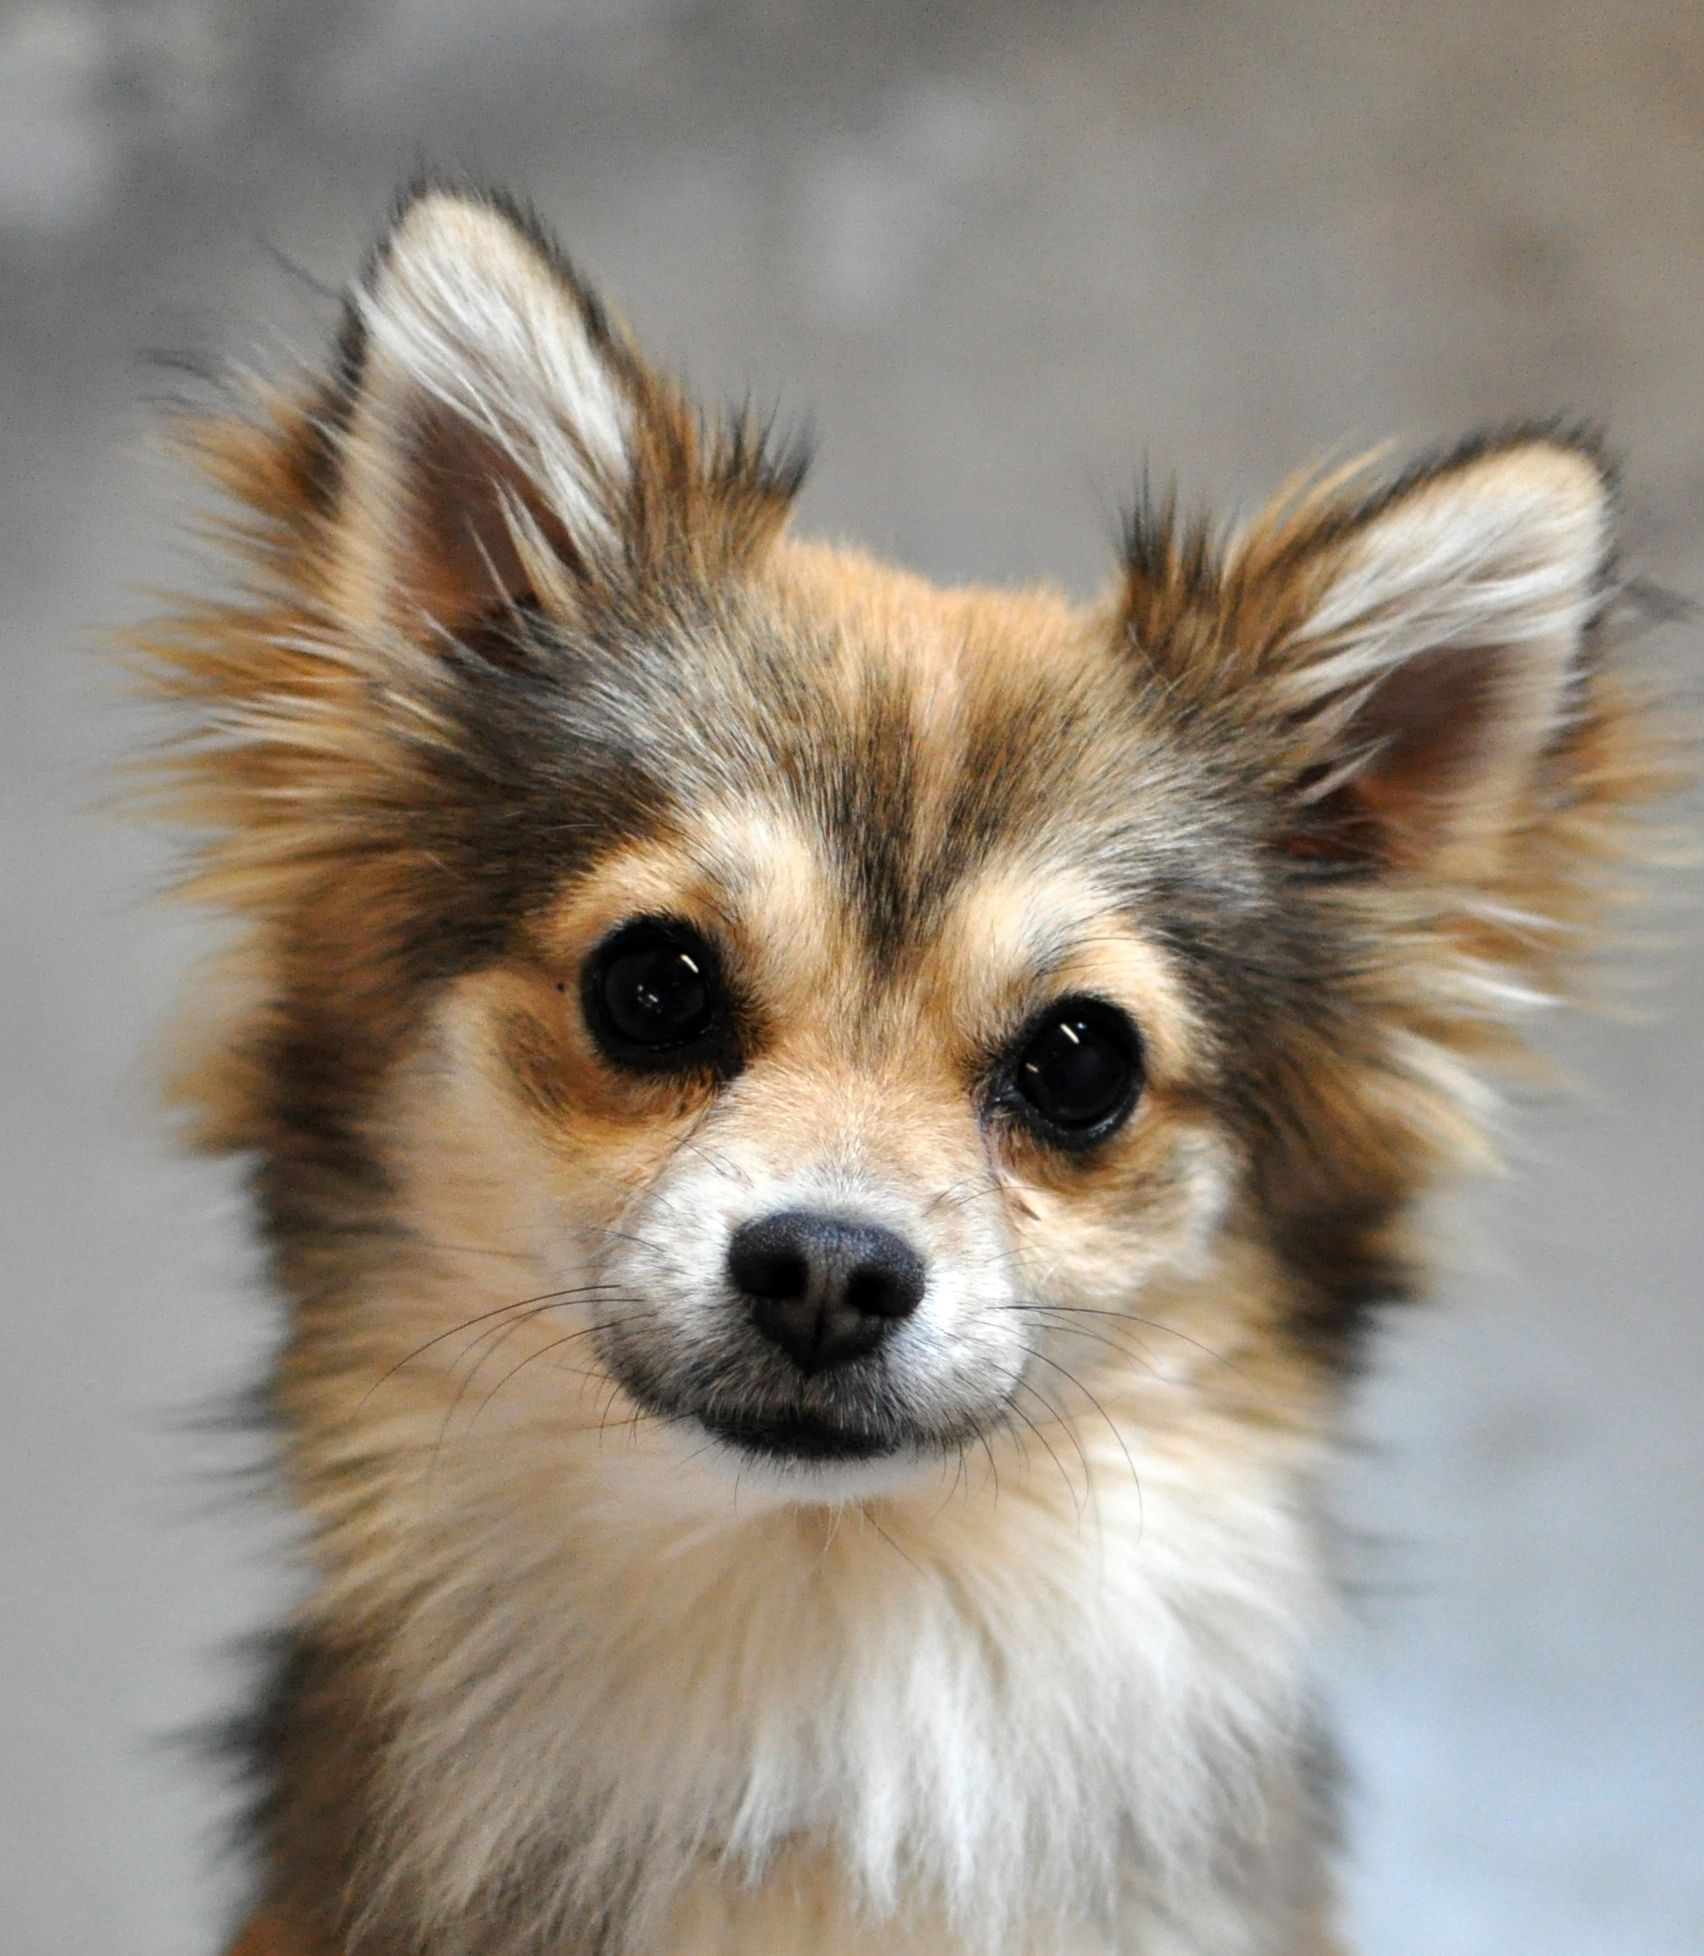 This little guy is at the Sacramento SPCA... what a face!